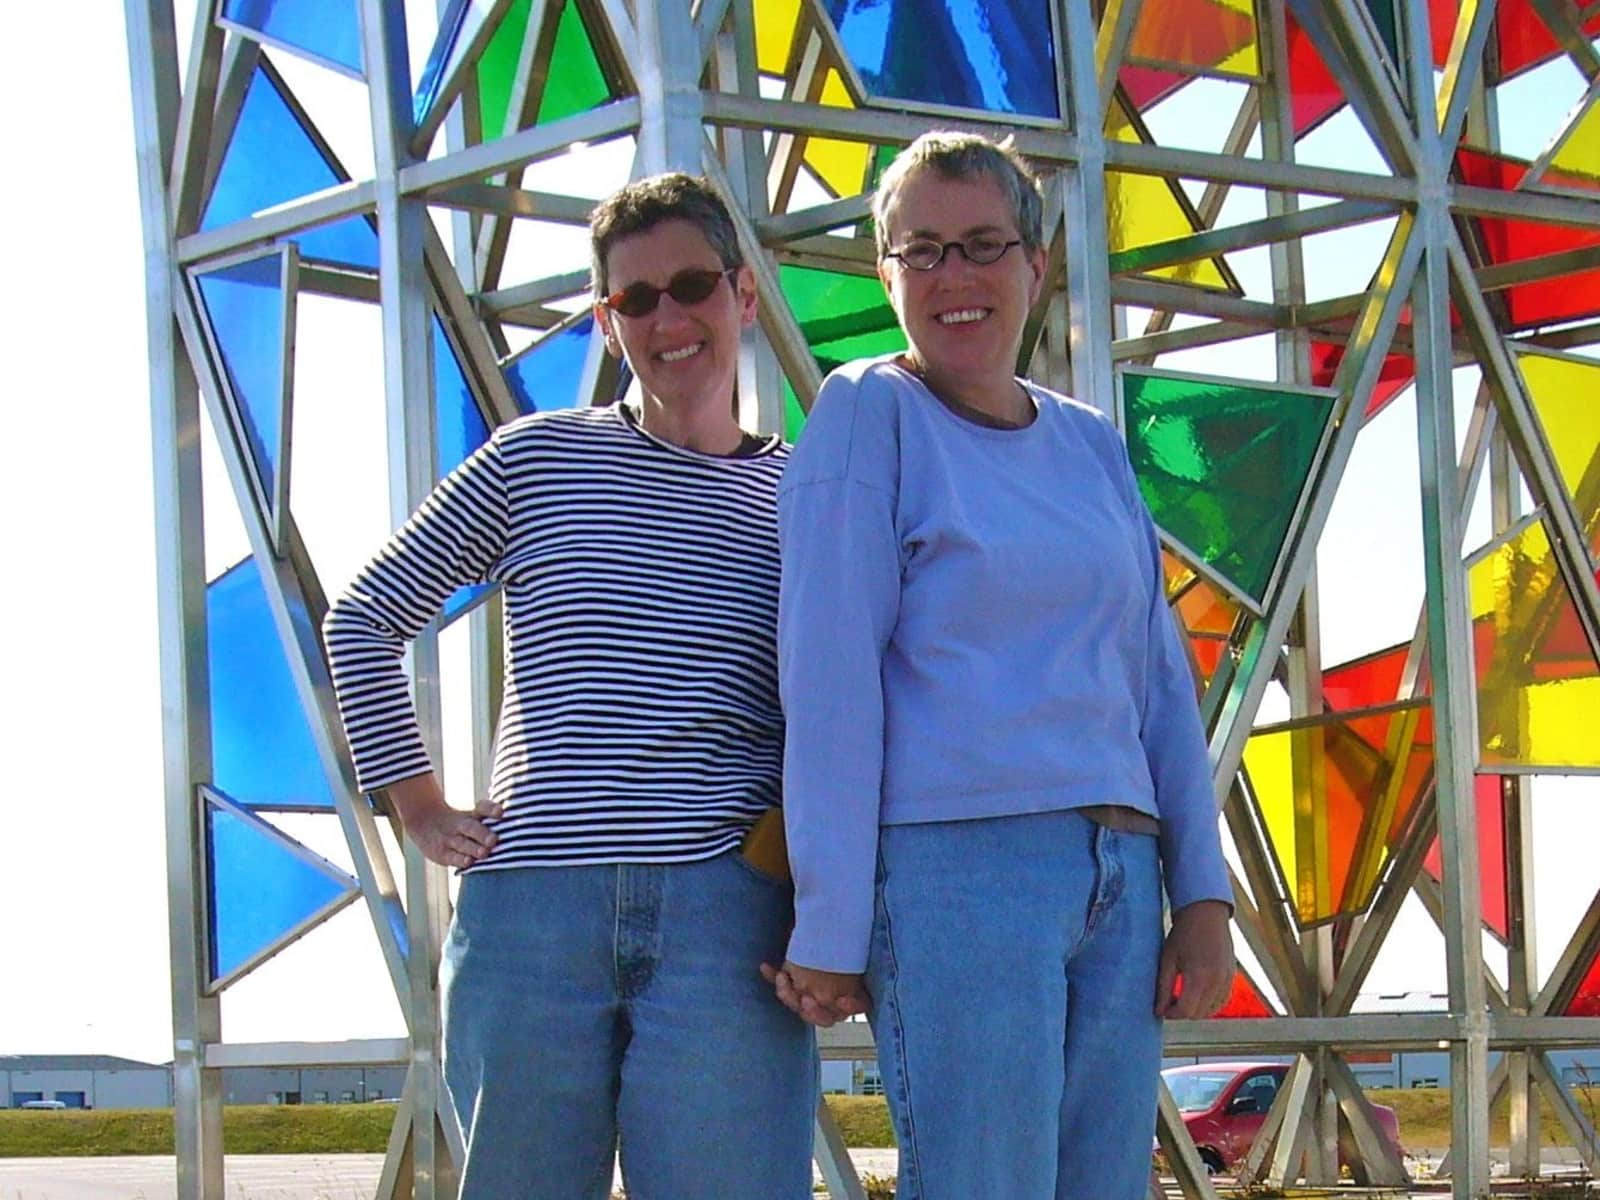 Joanie & Linmara from Bainbridge Island, Washington, United States